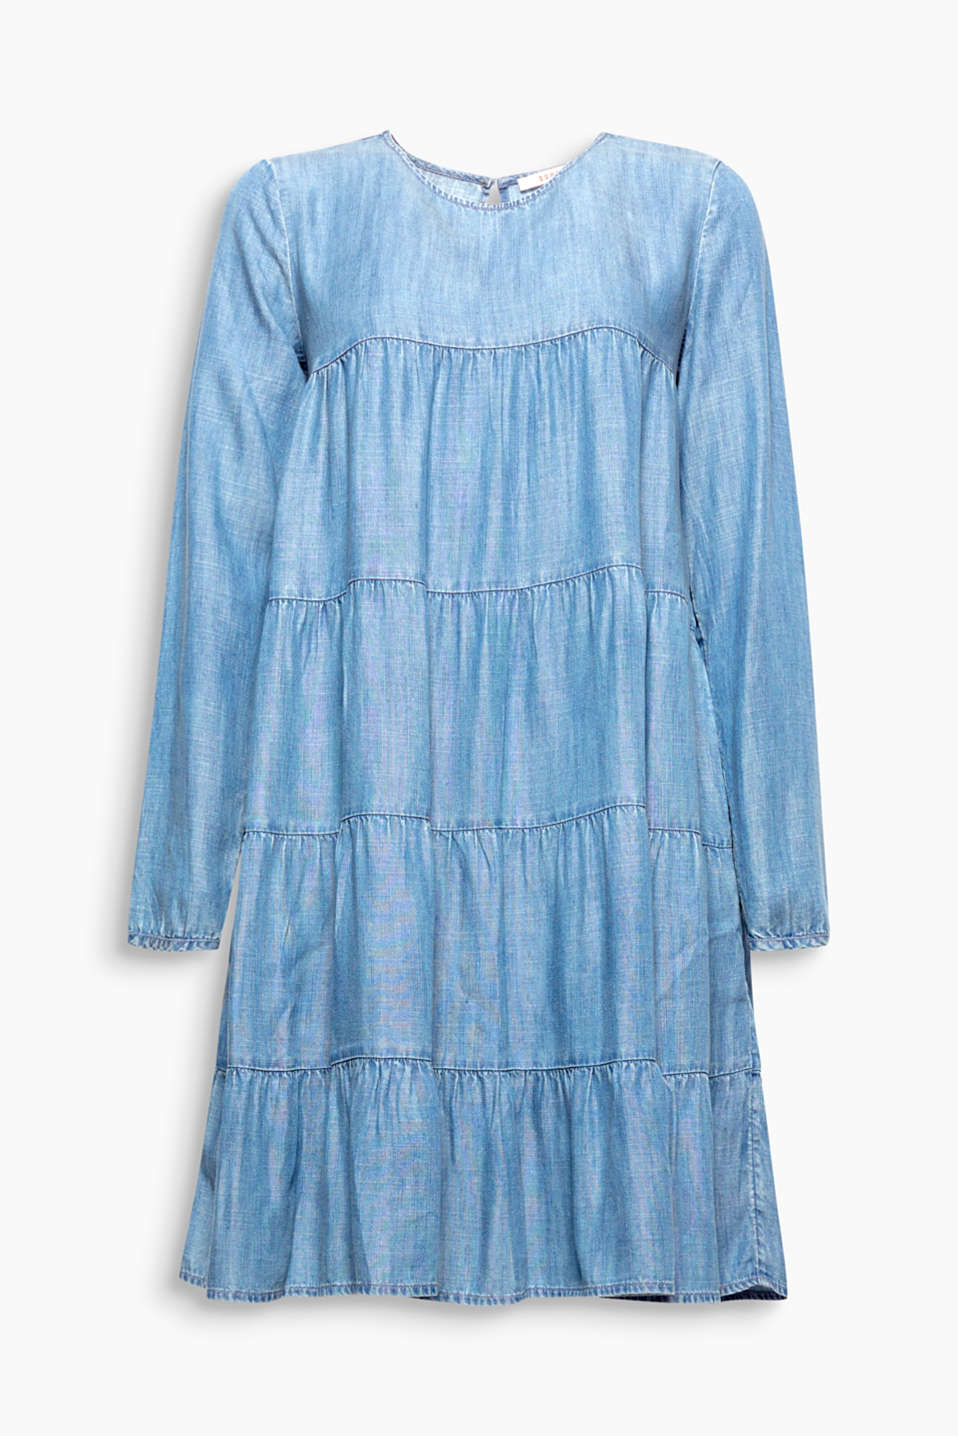 Cool denim look and yet fantastically feminine: the A-line cut and tiered design make this lyocell dress playfully pretty!